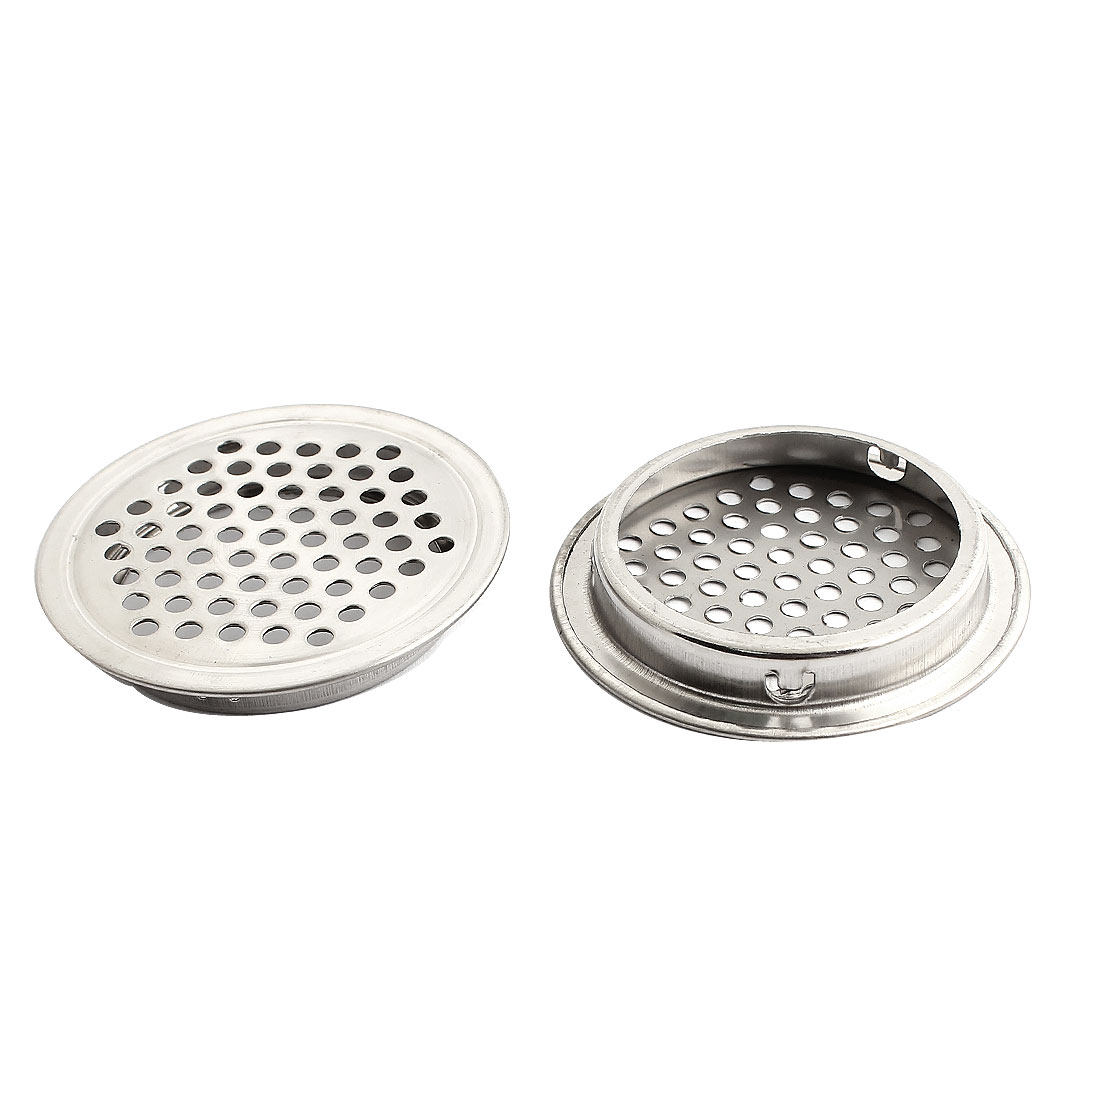 53mm Bottom Dia Perforated Mesh Air Vent Ventilation Louver Cover 2PCS